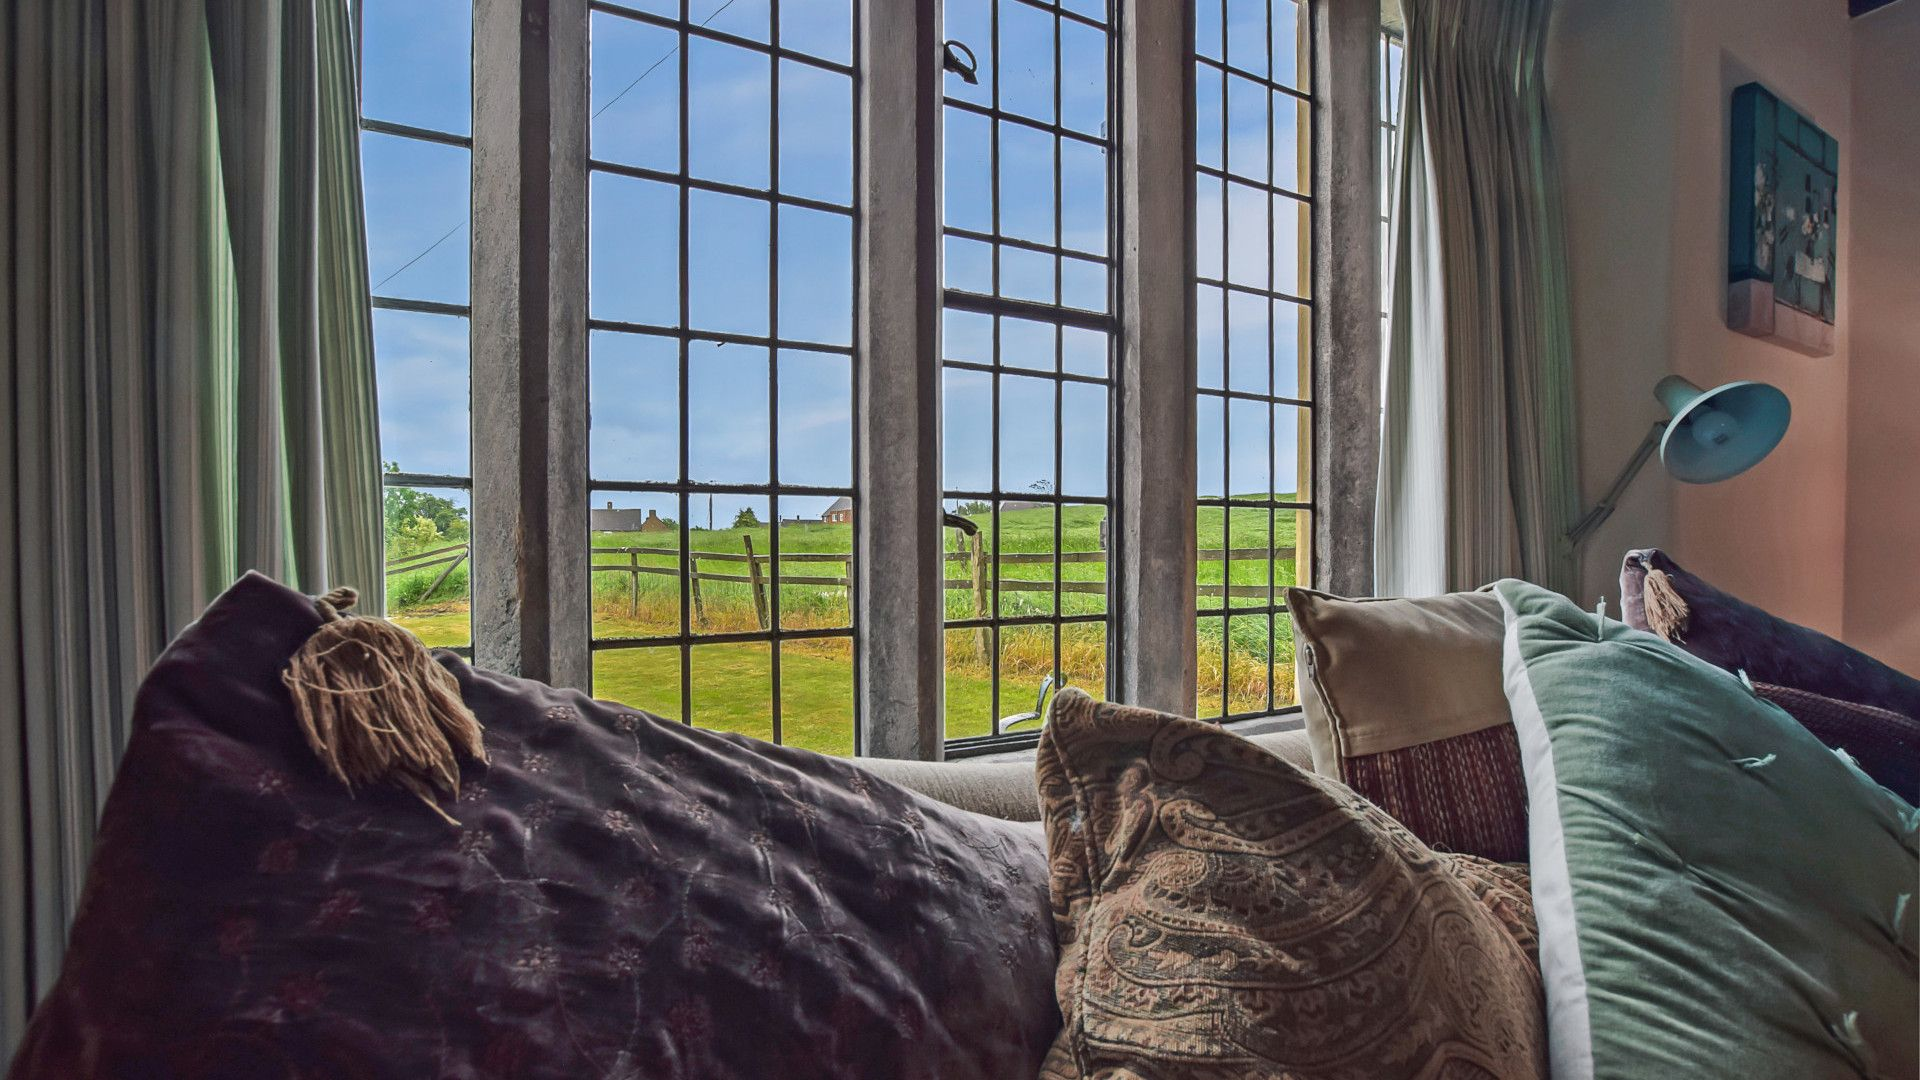 Living room window, Barndown, Bolthole Retreats